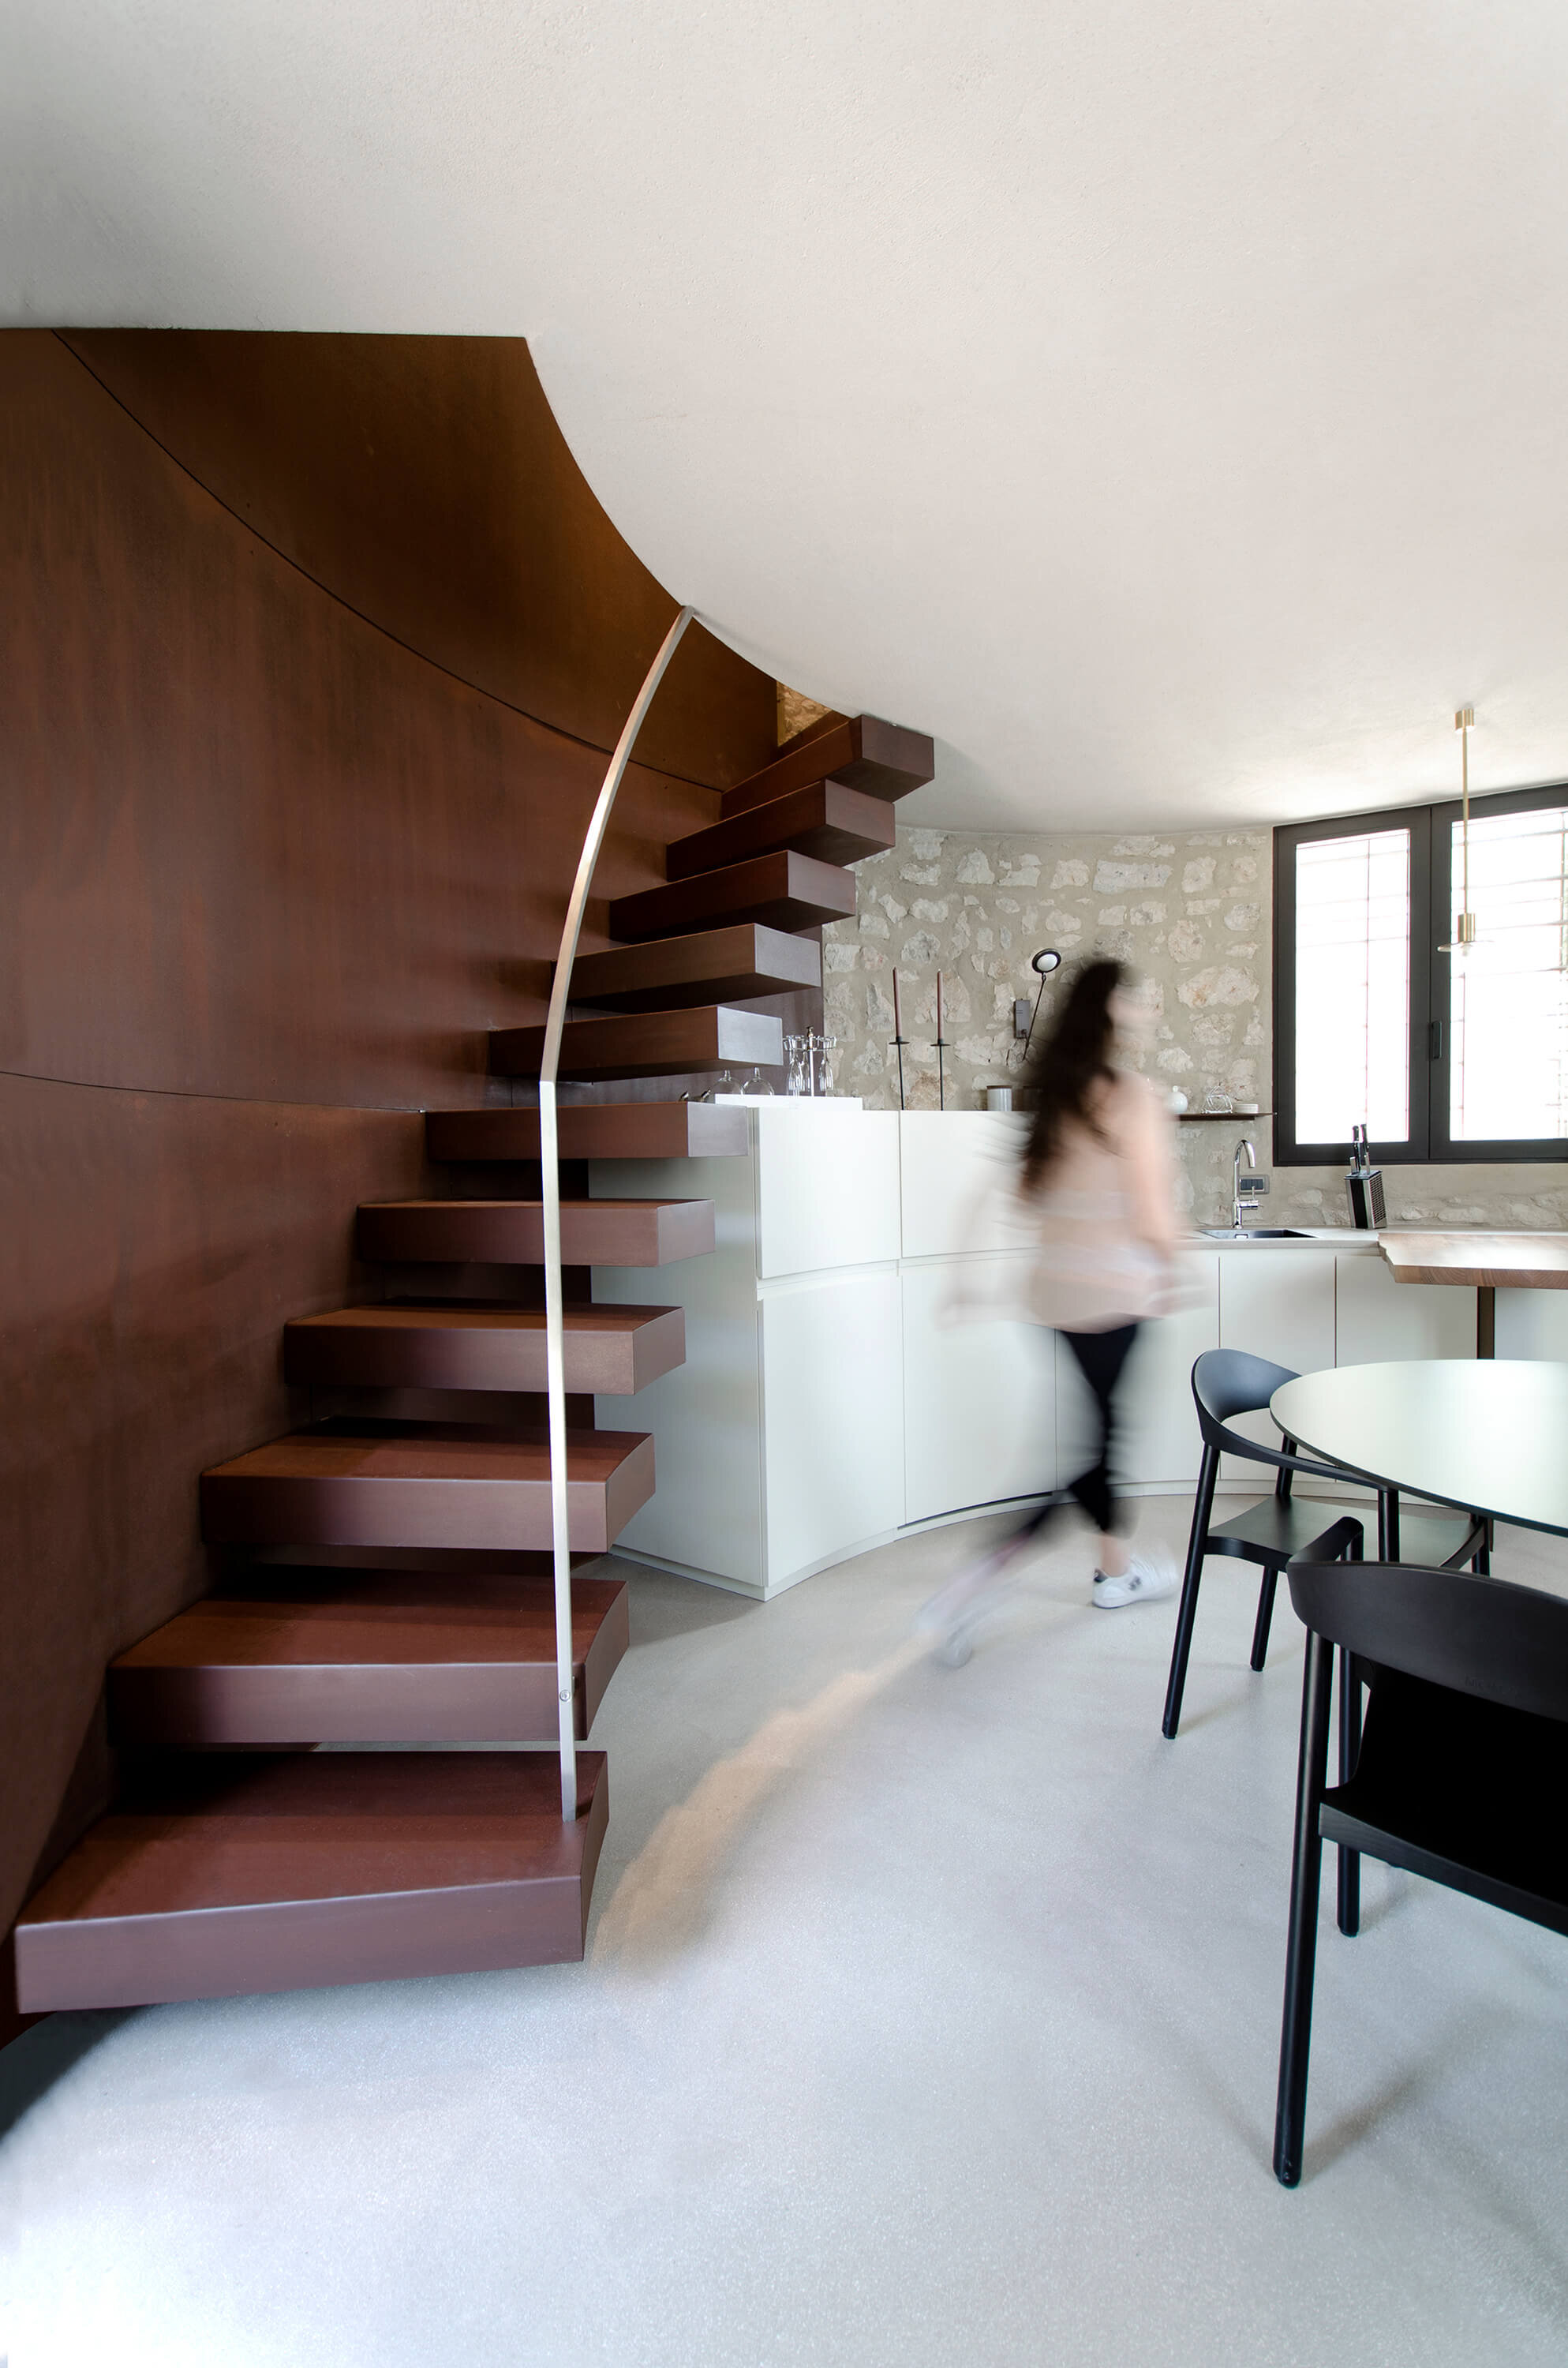 A-New-Life-for-a-Little-Tower-studio-aledolci&co-Italy-10